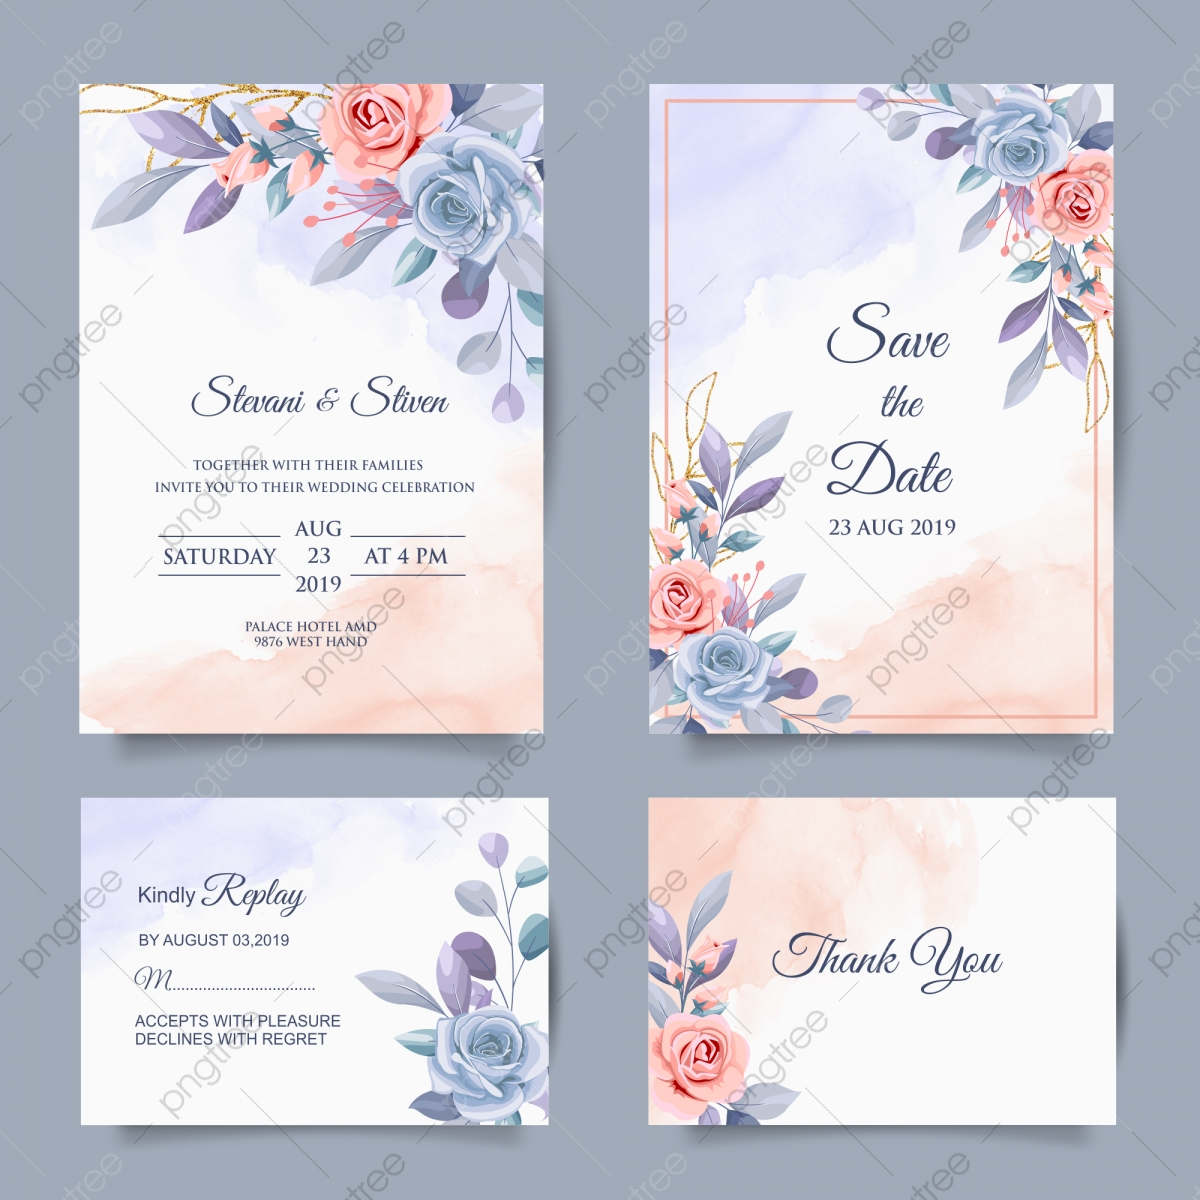 Elegant Set Wedding Invitation Template Template Download on Pngtree